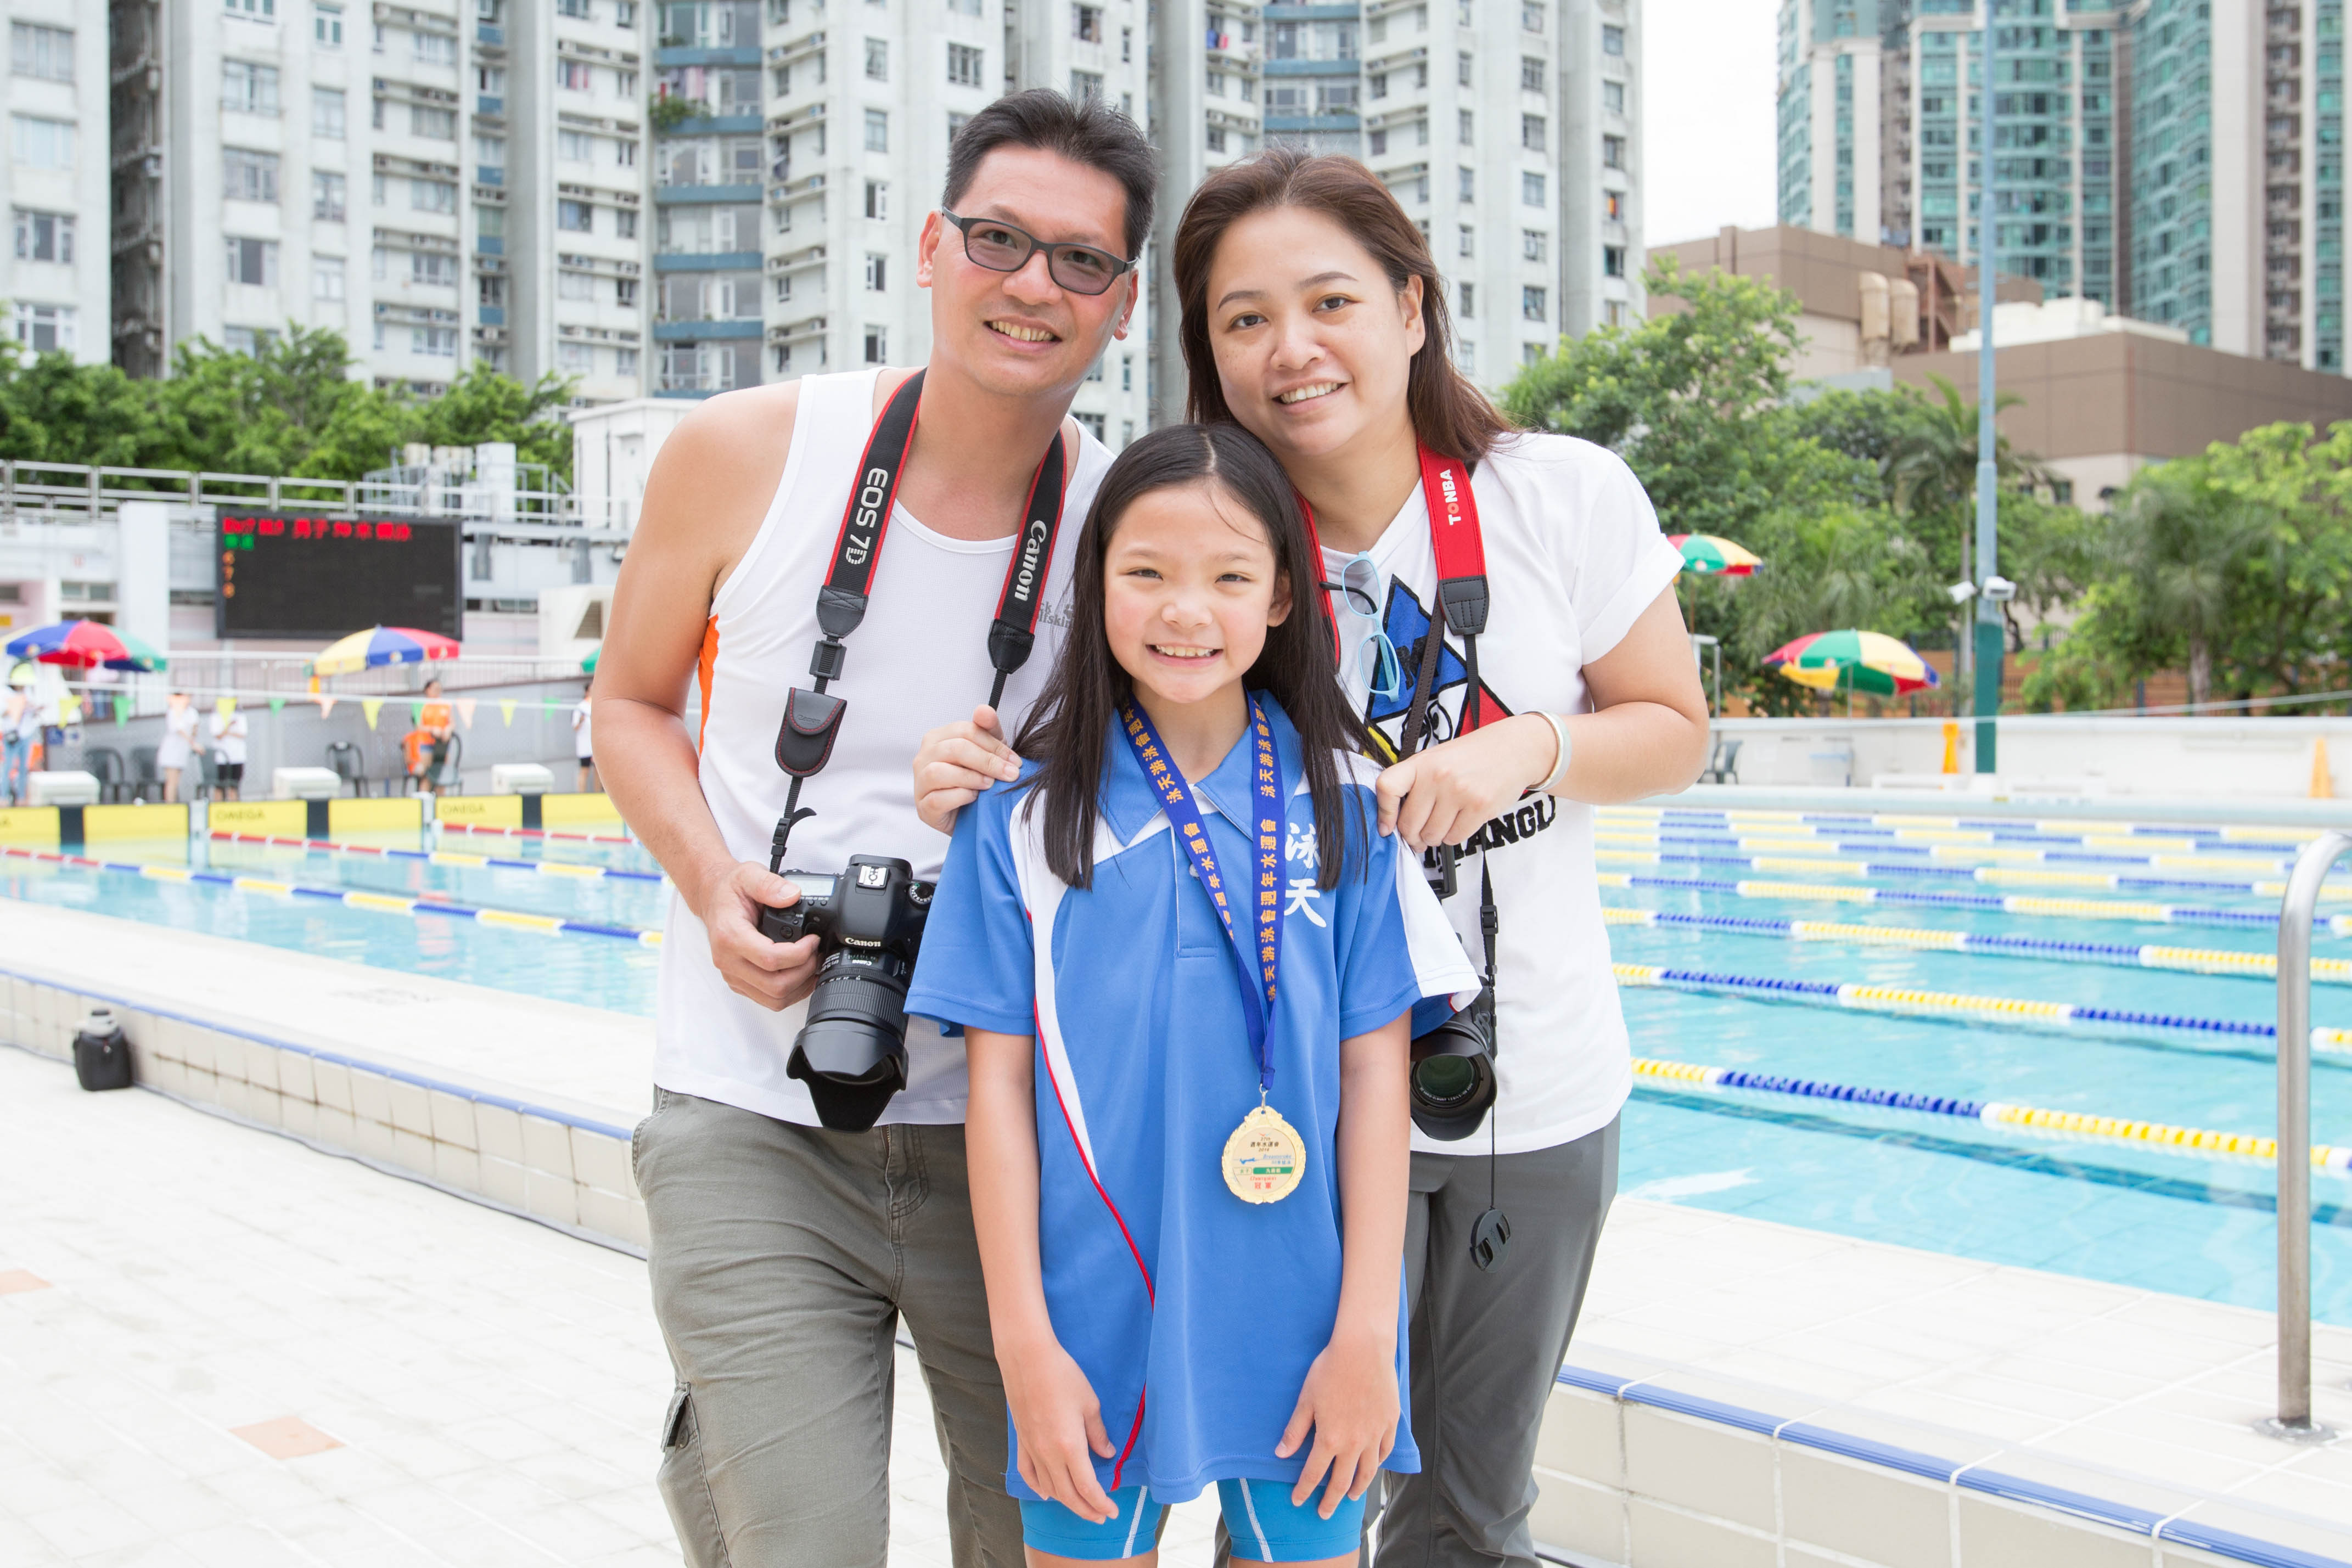 Win Tin Swimming Club - 27th Swimming Gala 5